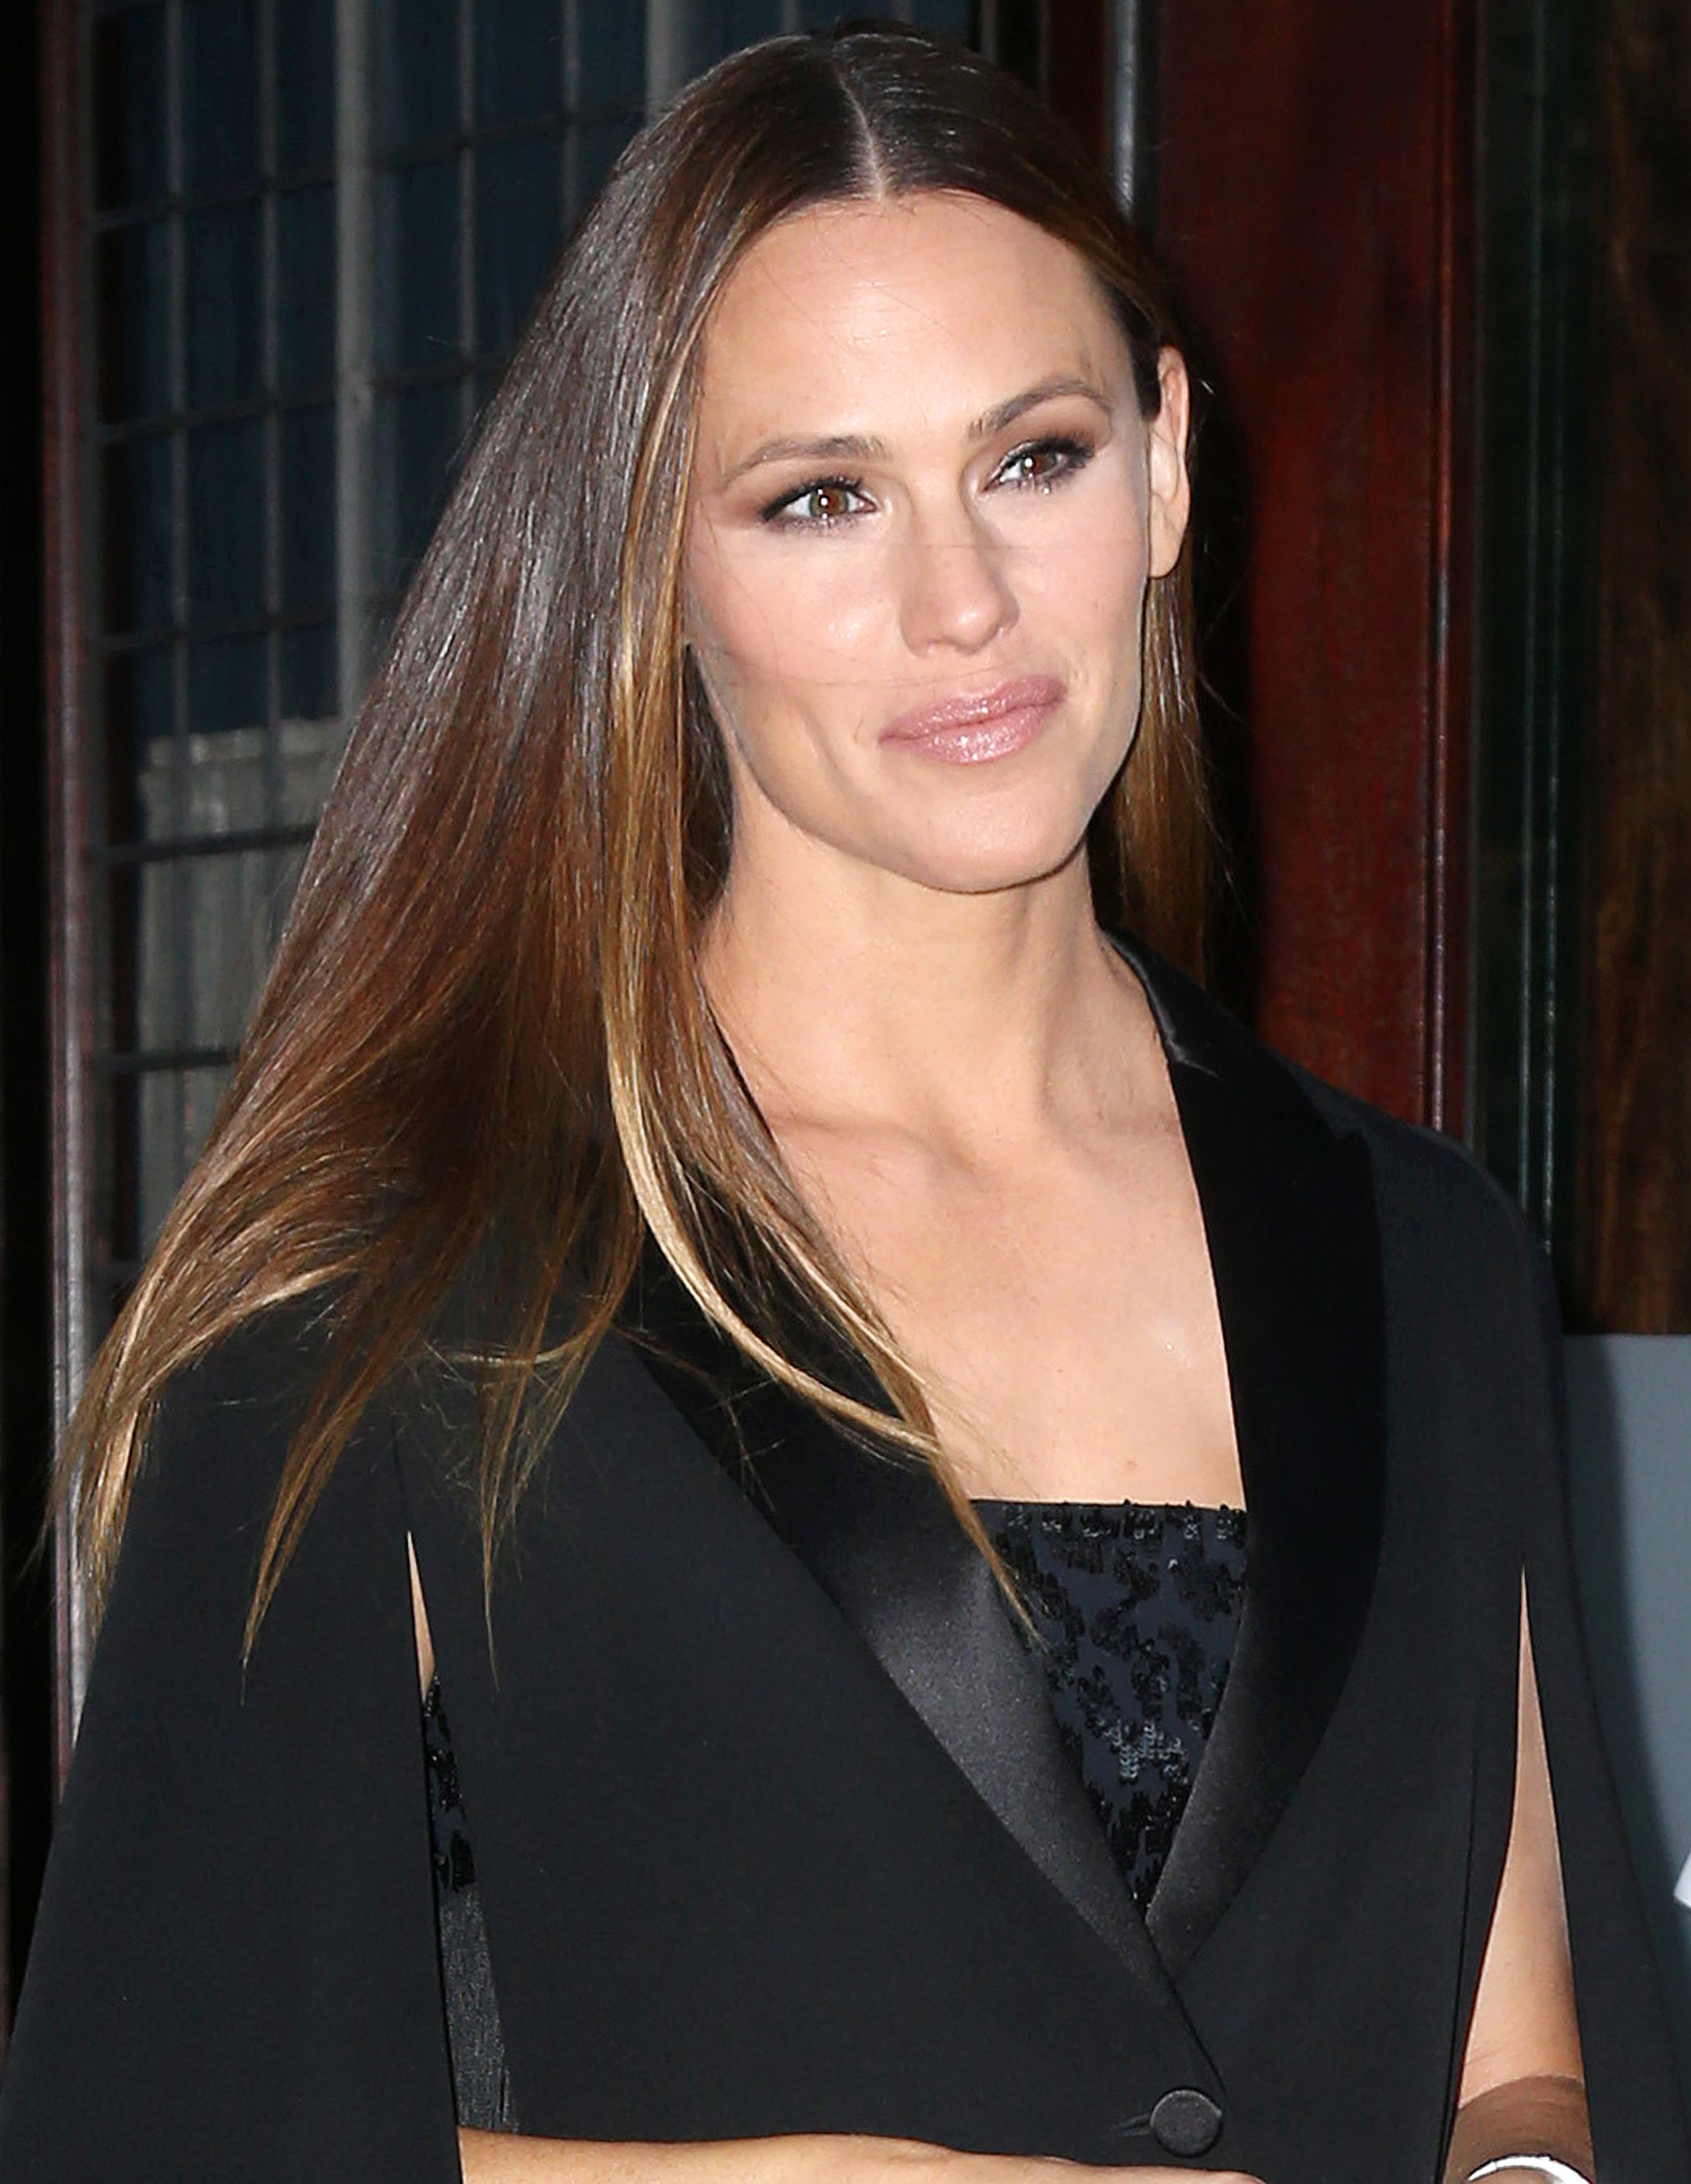 Jennifer Garner went glam and gothic as she was spotted leaving The Bowery Hotel on her way to an event in New York City on Oct. 18, 2017.